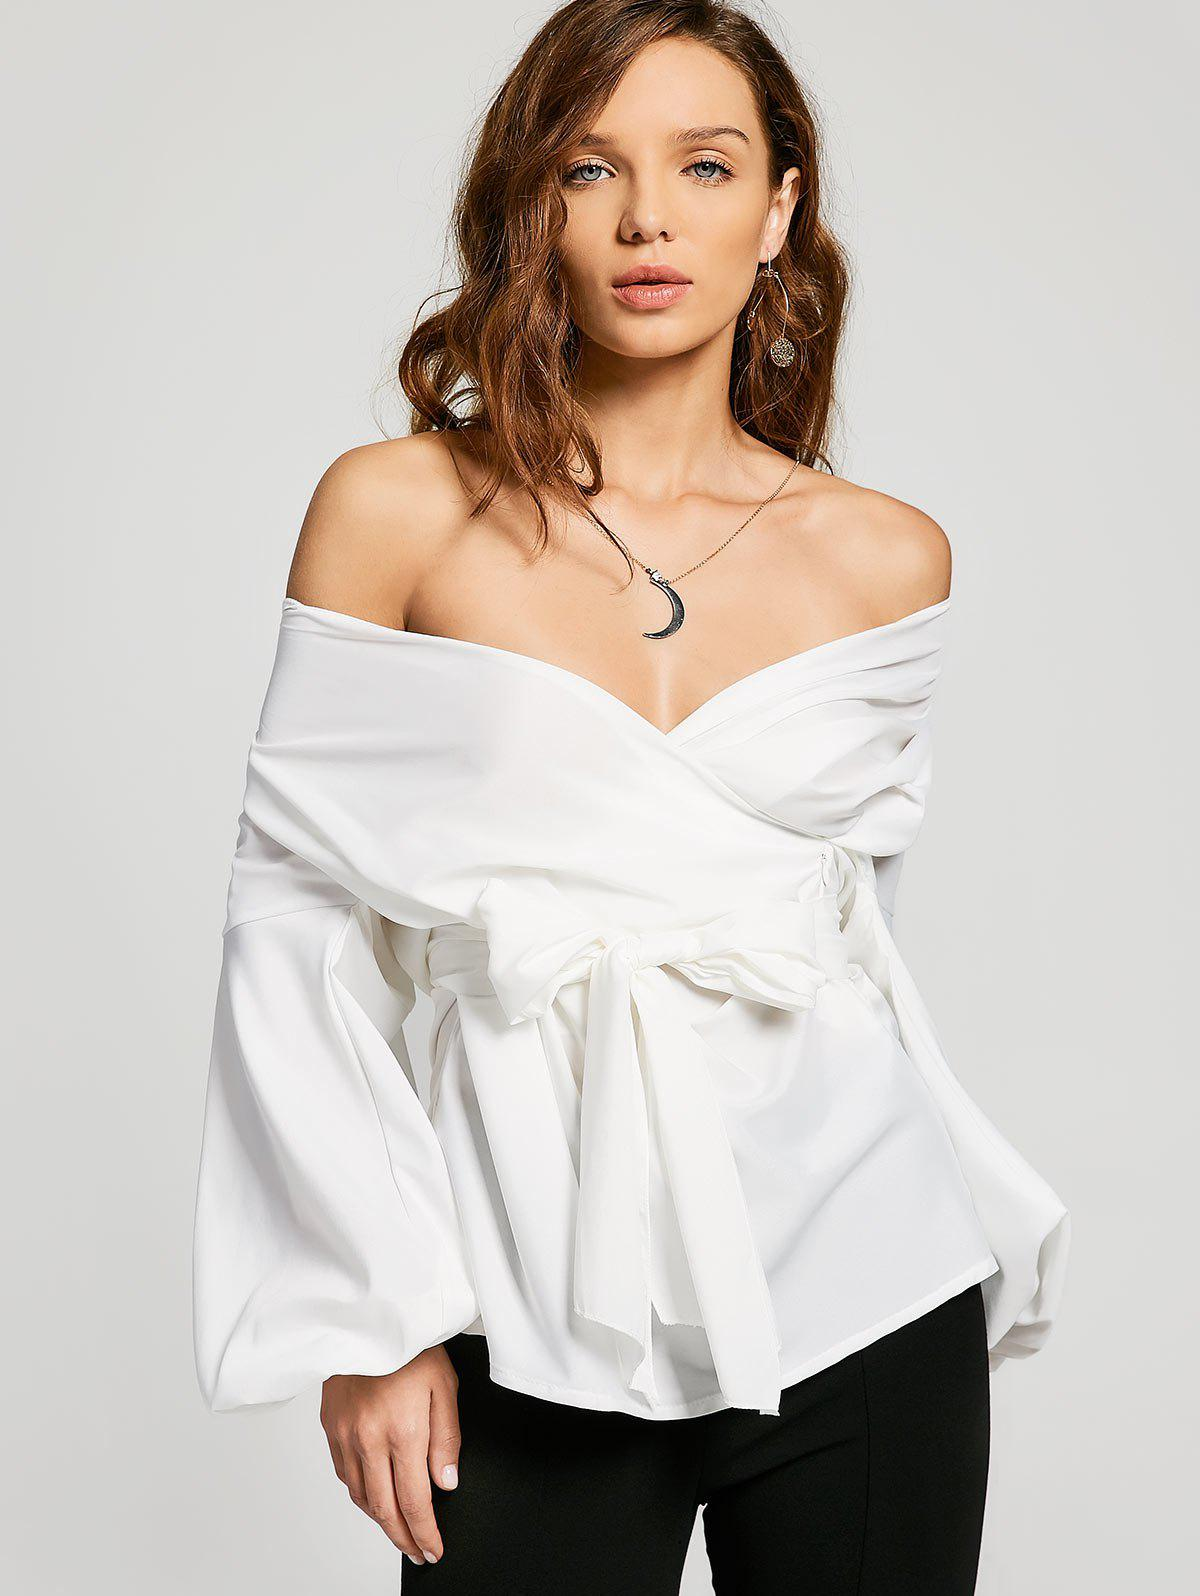 Off Shoulder Belted BlouseWOMEN<br><br>Size: M; Color: WHITE; Material: Cotton,Polyester; Shirt Length: Regular; Sleeve Length: Full; Collar: Off The Shoulder; Pattern Type: Solid; Style: Fashion; Seasons: Autumn,Spring; Weight: 0.2800kg; Package Contents: 1 x Blouse  1 x Belt; Occasion: Casual;